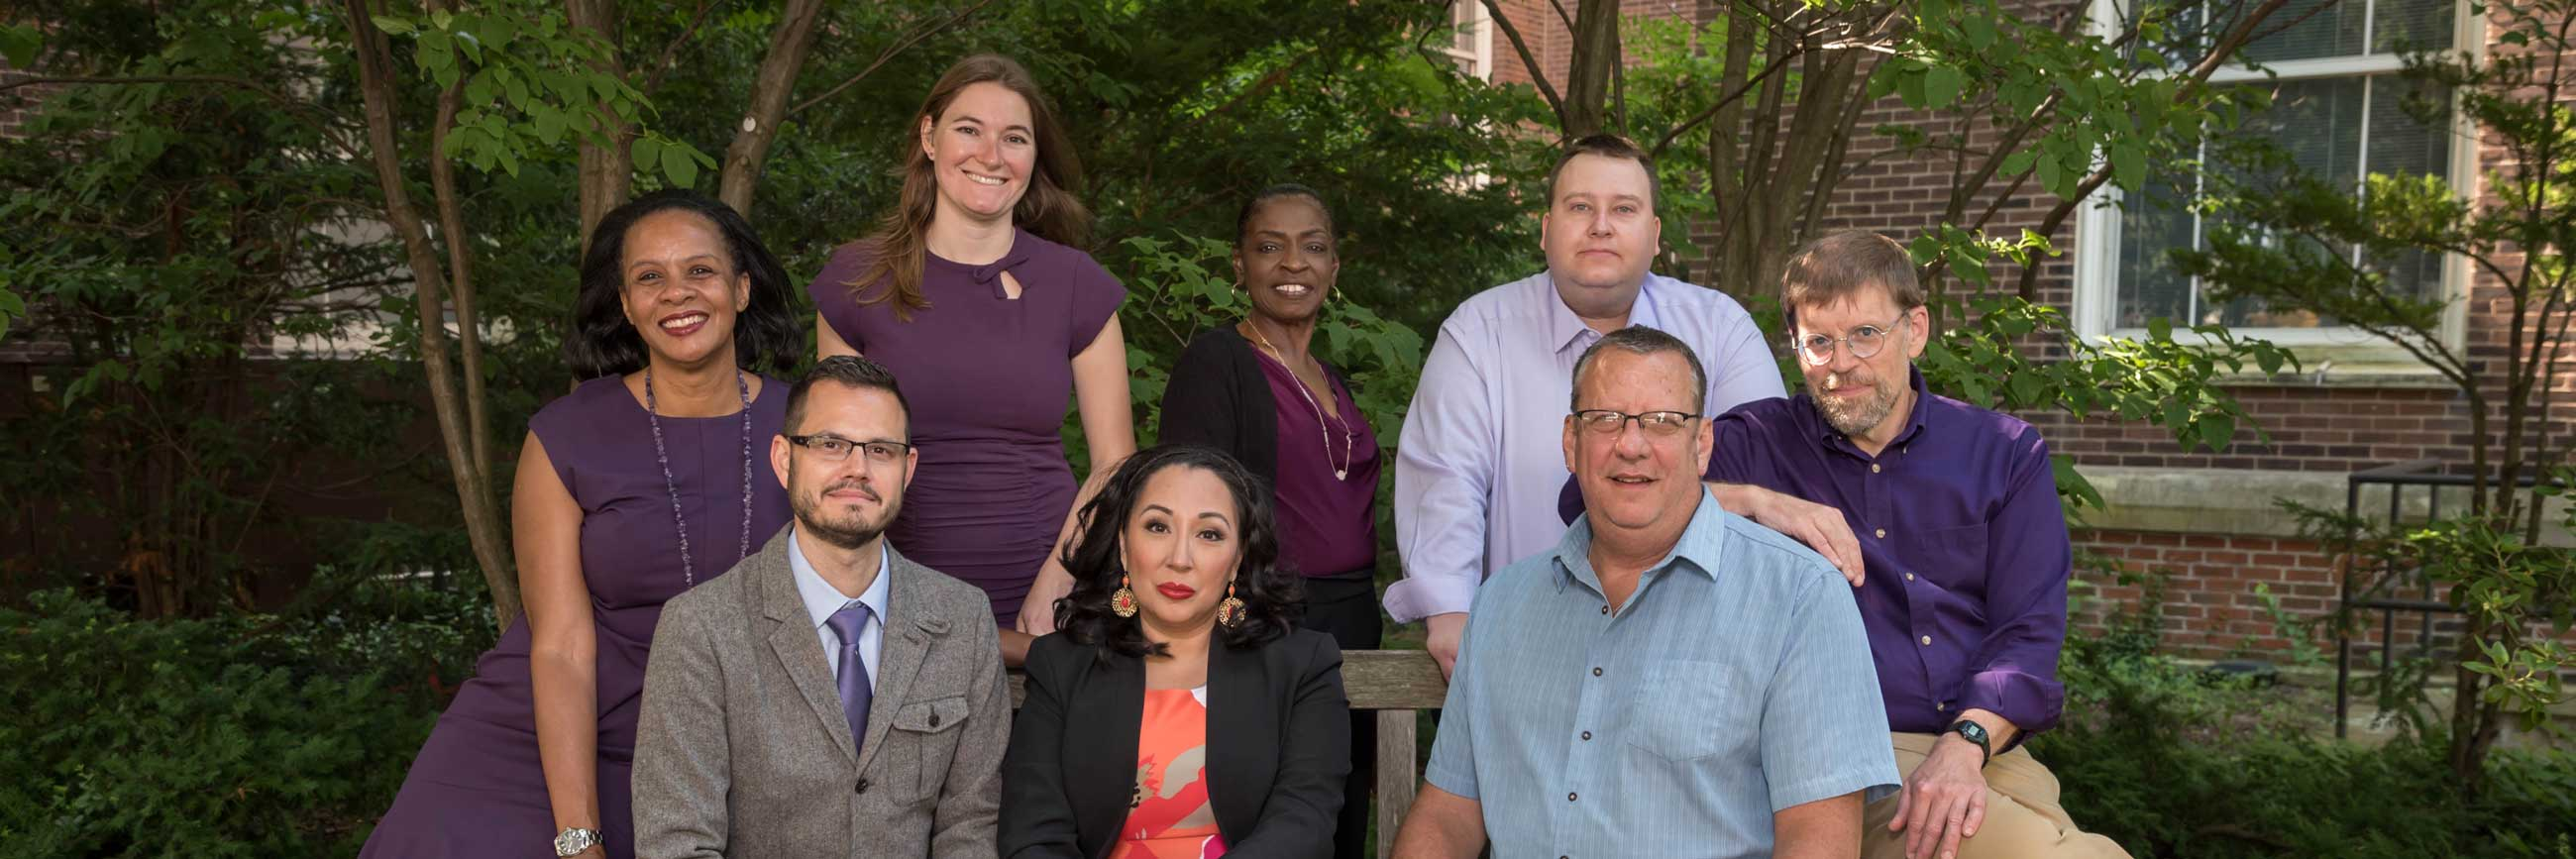 A group photo of the Medill graduate admissions team